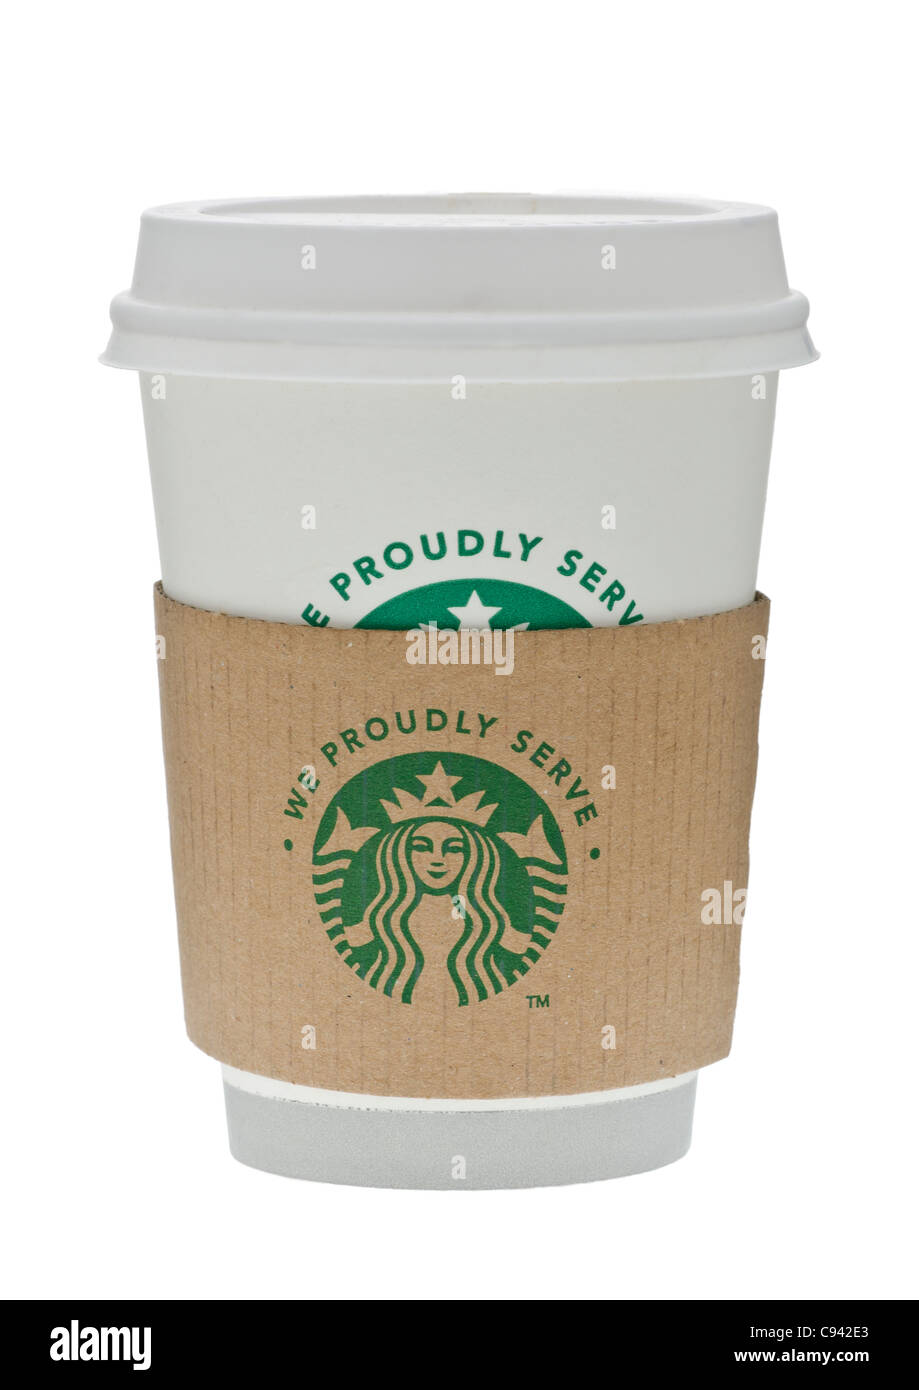 cup of starbucks coffee with protective sleeve and showing new logo